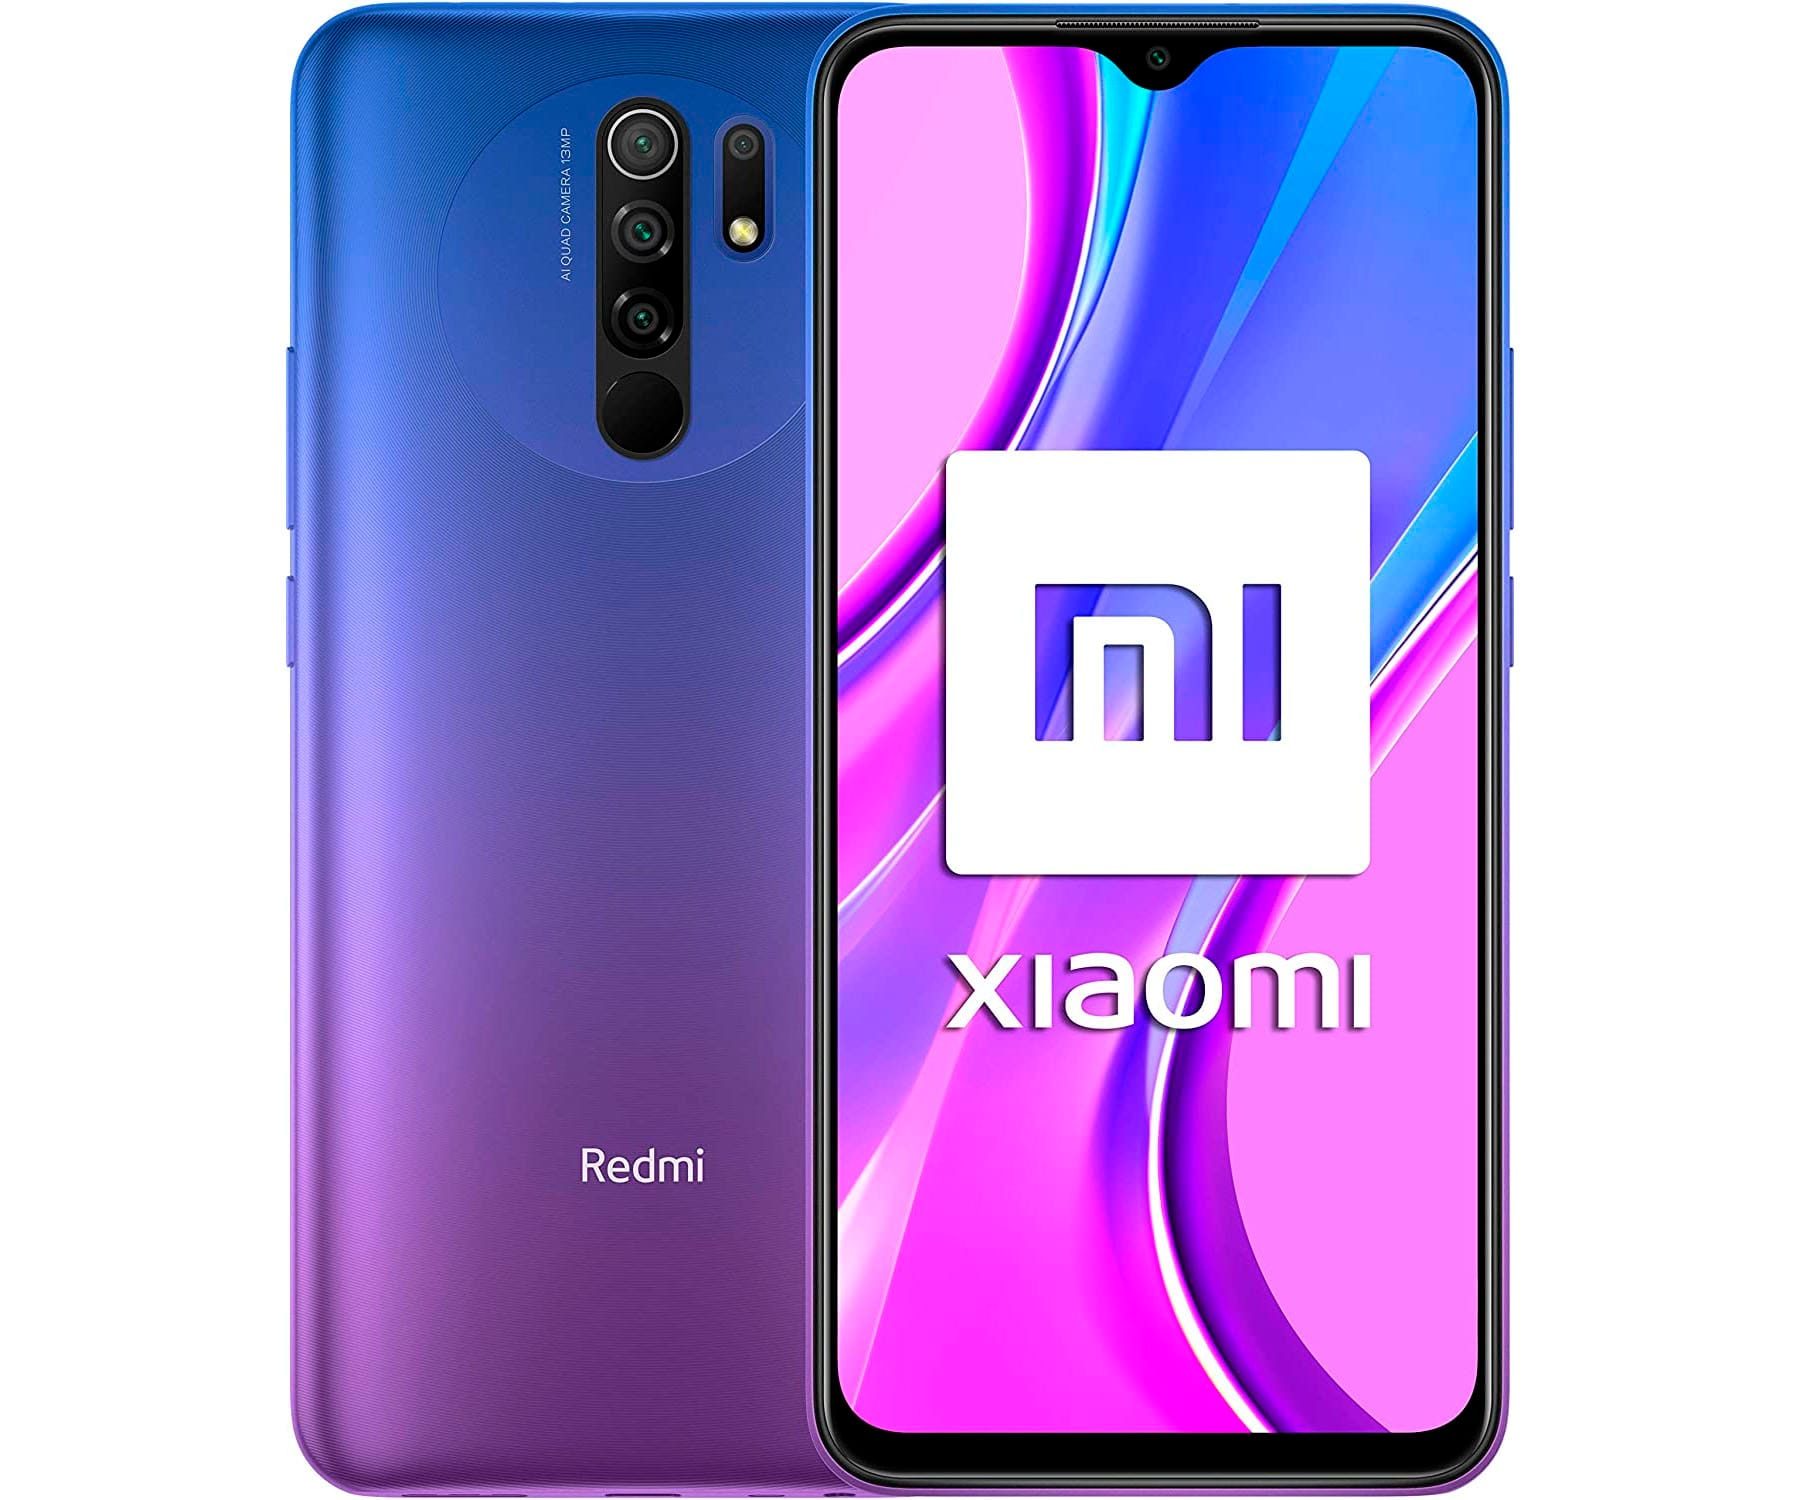 XIAOMI REDMI 9 MORADO MÓVIL 4G DUAL SIM 6.53'' FHD+ OCTACORE 64GB 4GB RAM QUADCAM 13MP SELFIES 8MP